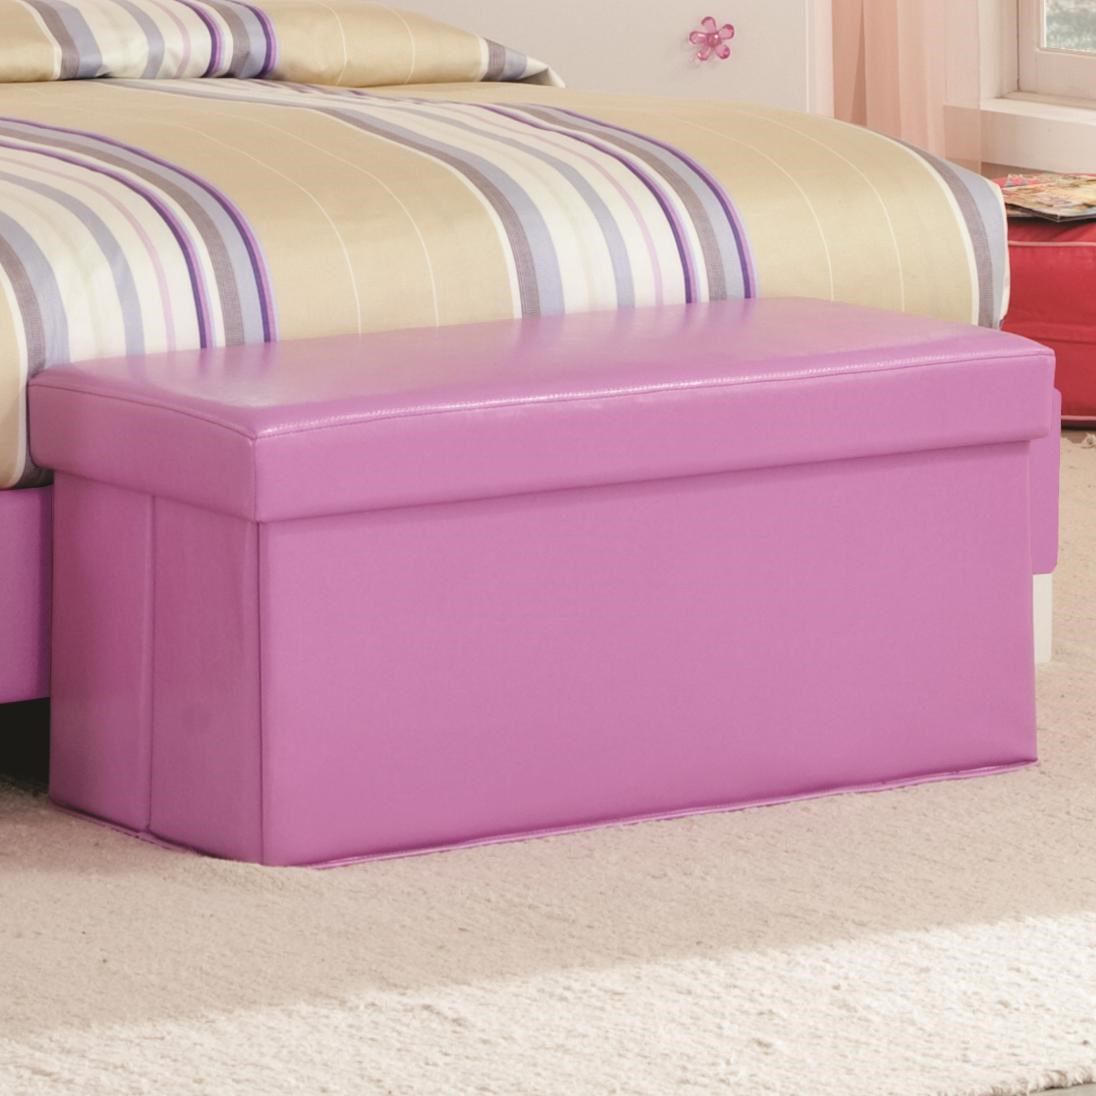 Kith Furniture Savannah269 Youth Storage Chest with Bright ...